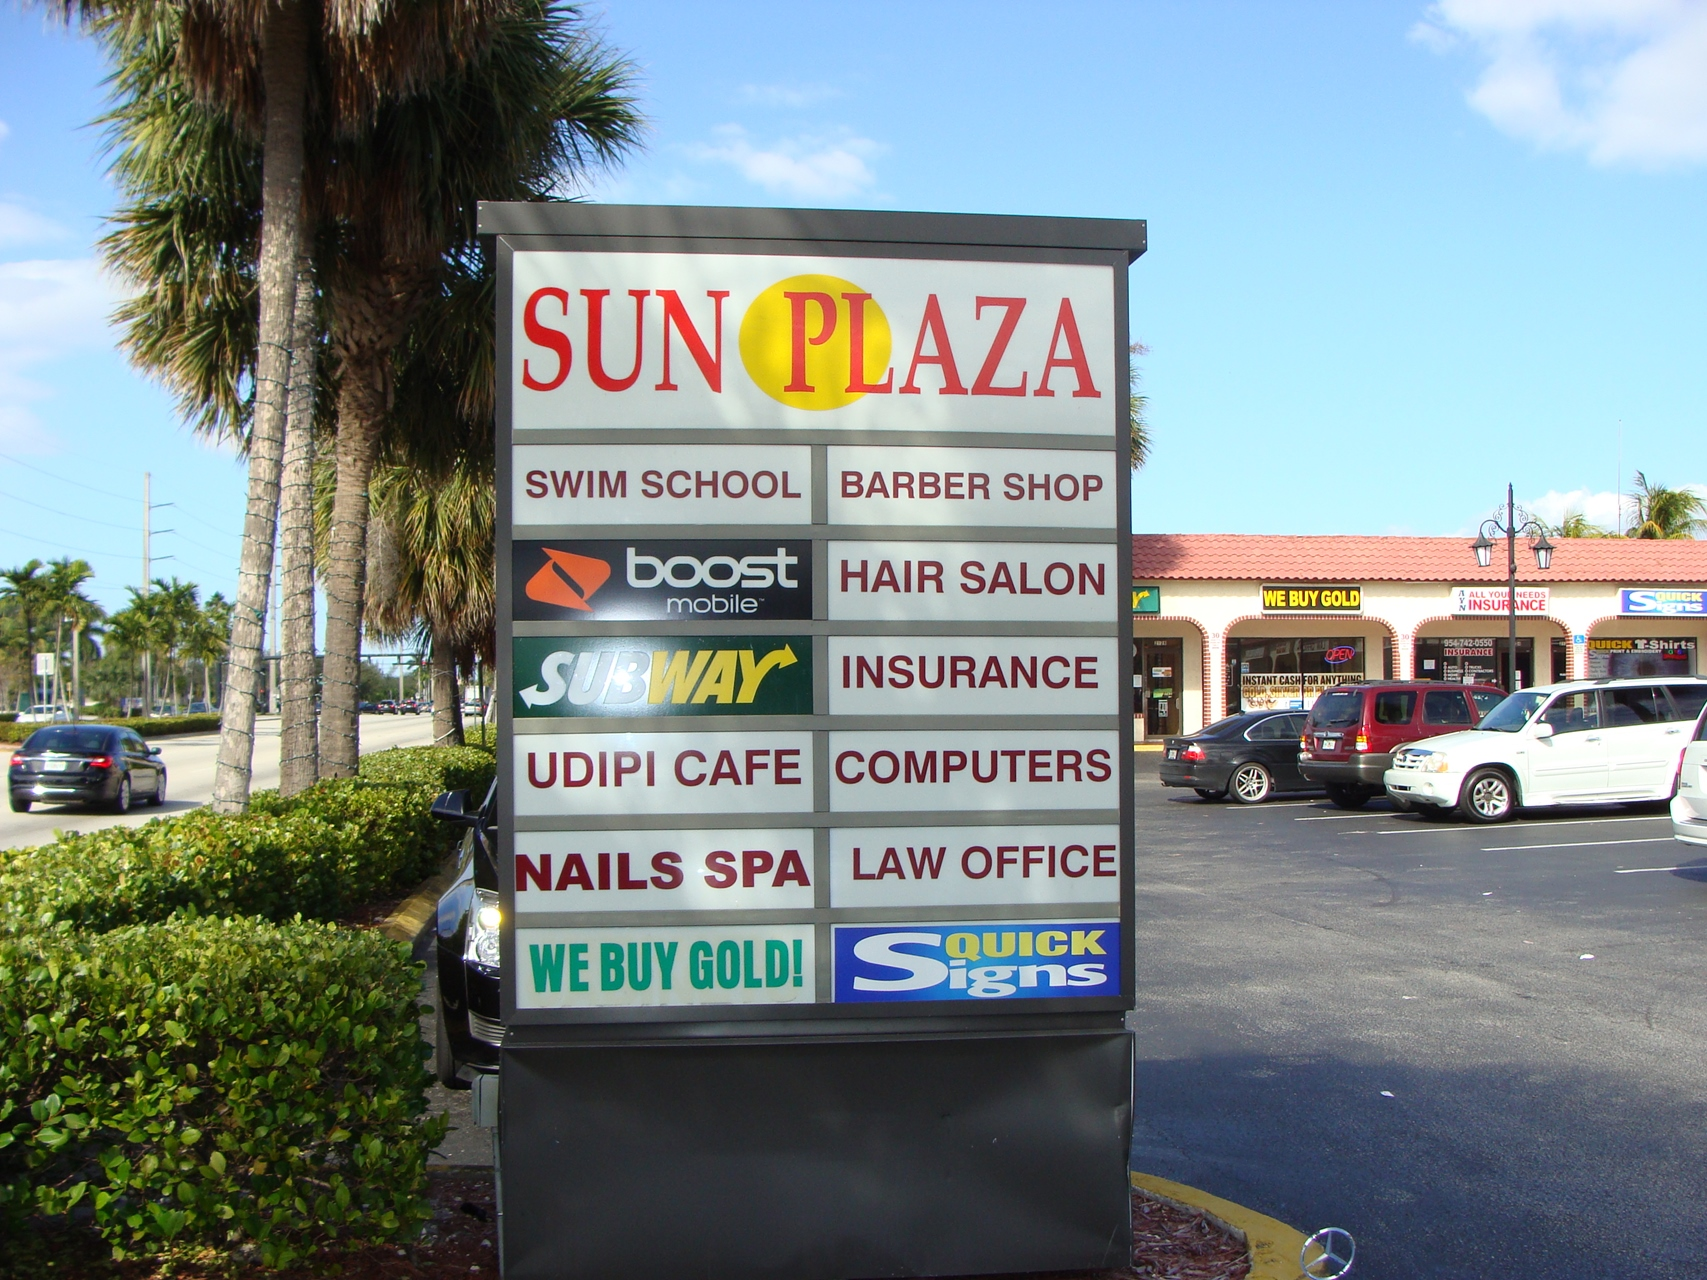 Sun Plaza 2074 N. University Drive, Sunrise, FL 33322